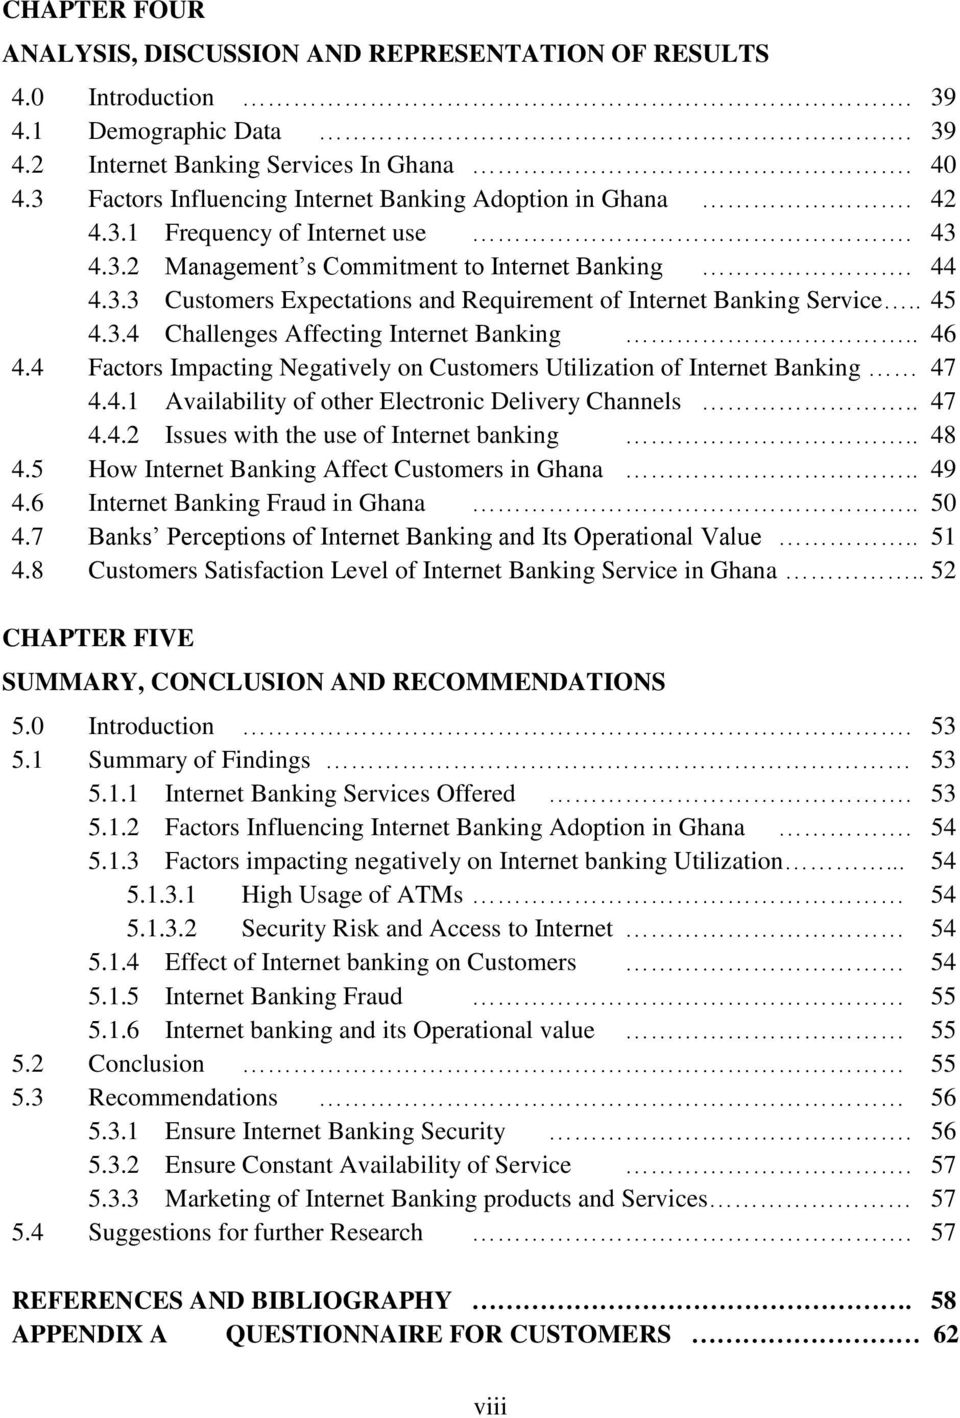 online banking security essay Essay on online banking threat or boon  pyrenessences analysis essay research papers on database security empathy essays zoning maps diversity essay mba applications persuasive essays on smoking rooms ralph waldo emerson essays analysis paper animals in medical research essay tarzan nature vs nurture essay tezha layem essay essaye.